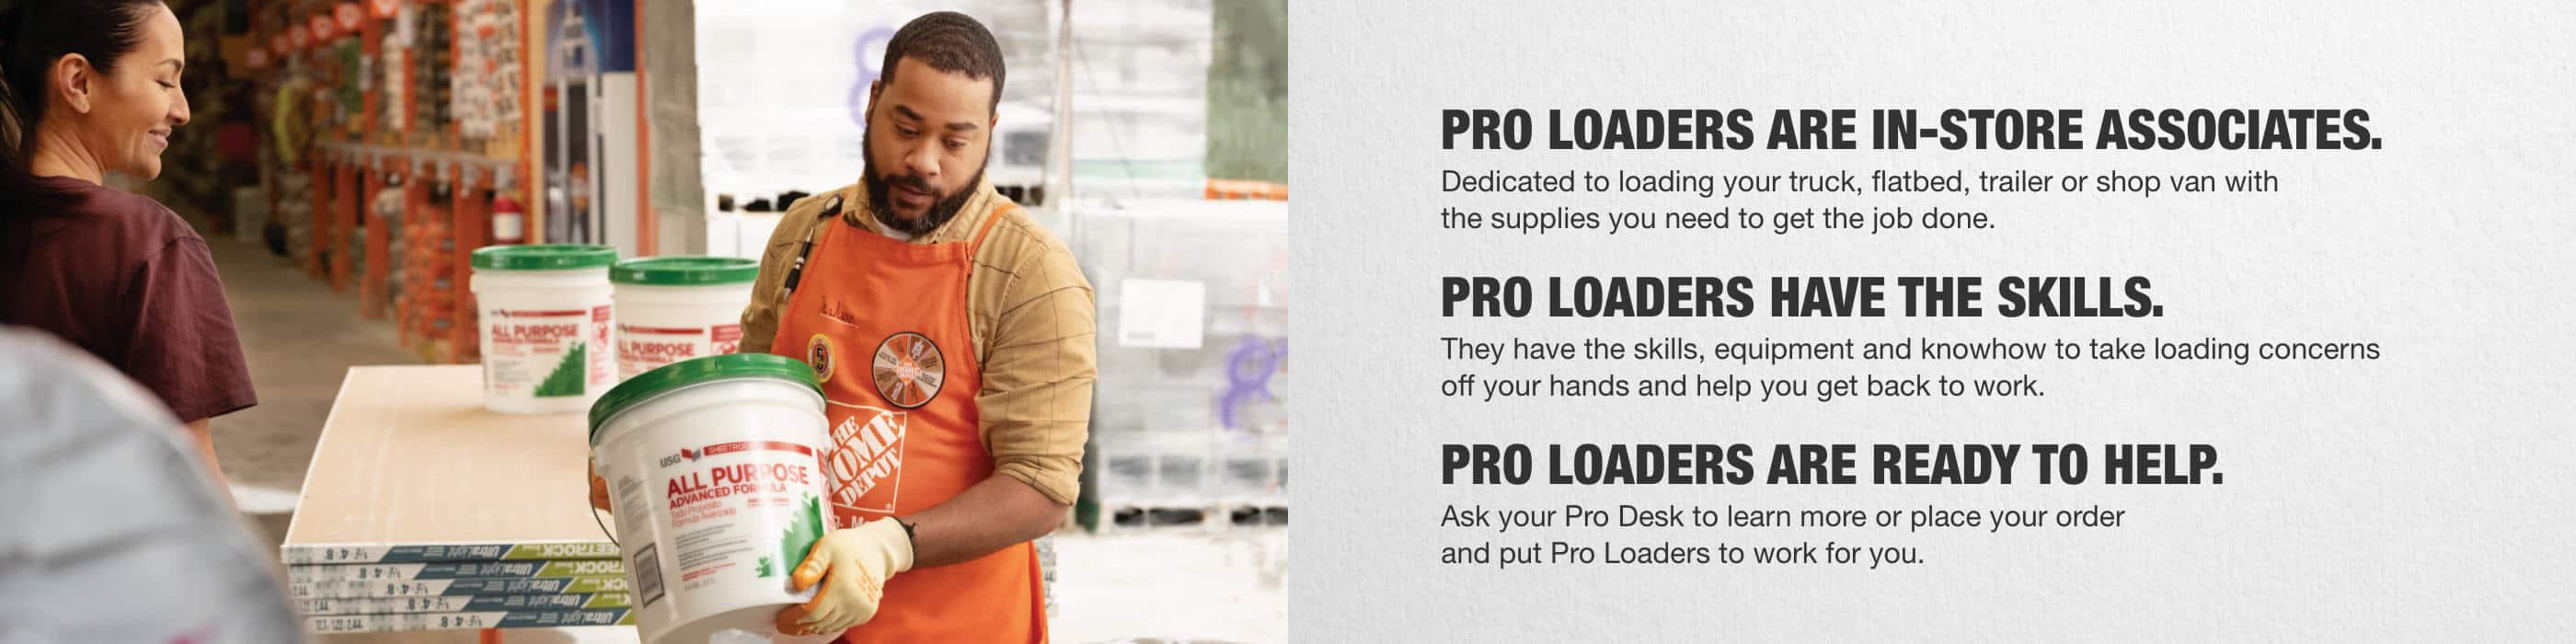 Home Depot associate loading buckets of joint compound onto Pro's pickup